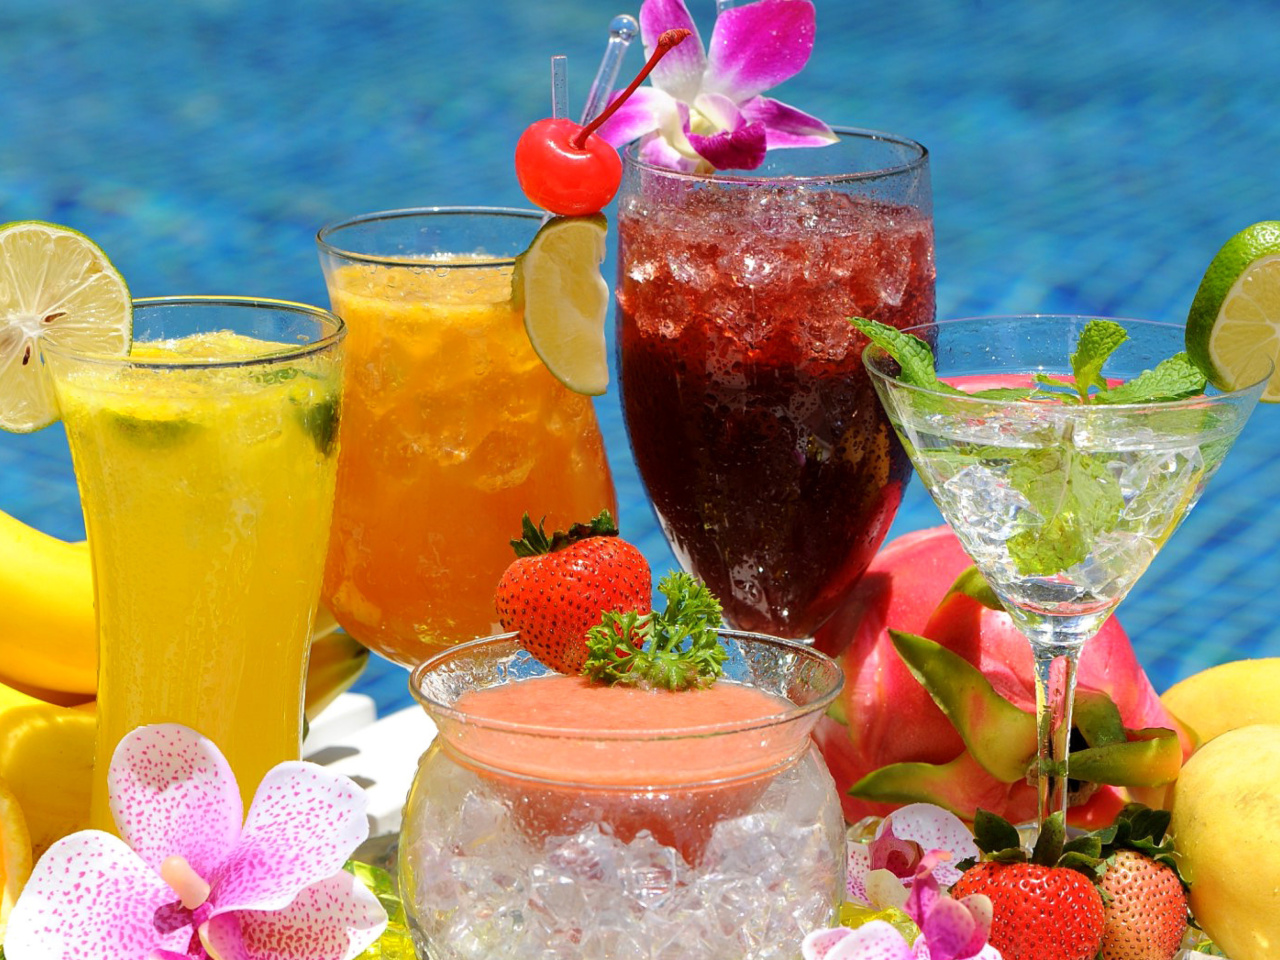 Summer cocktails in hotel All Inclusive screenshot #1 1280x960